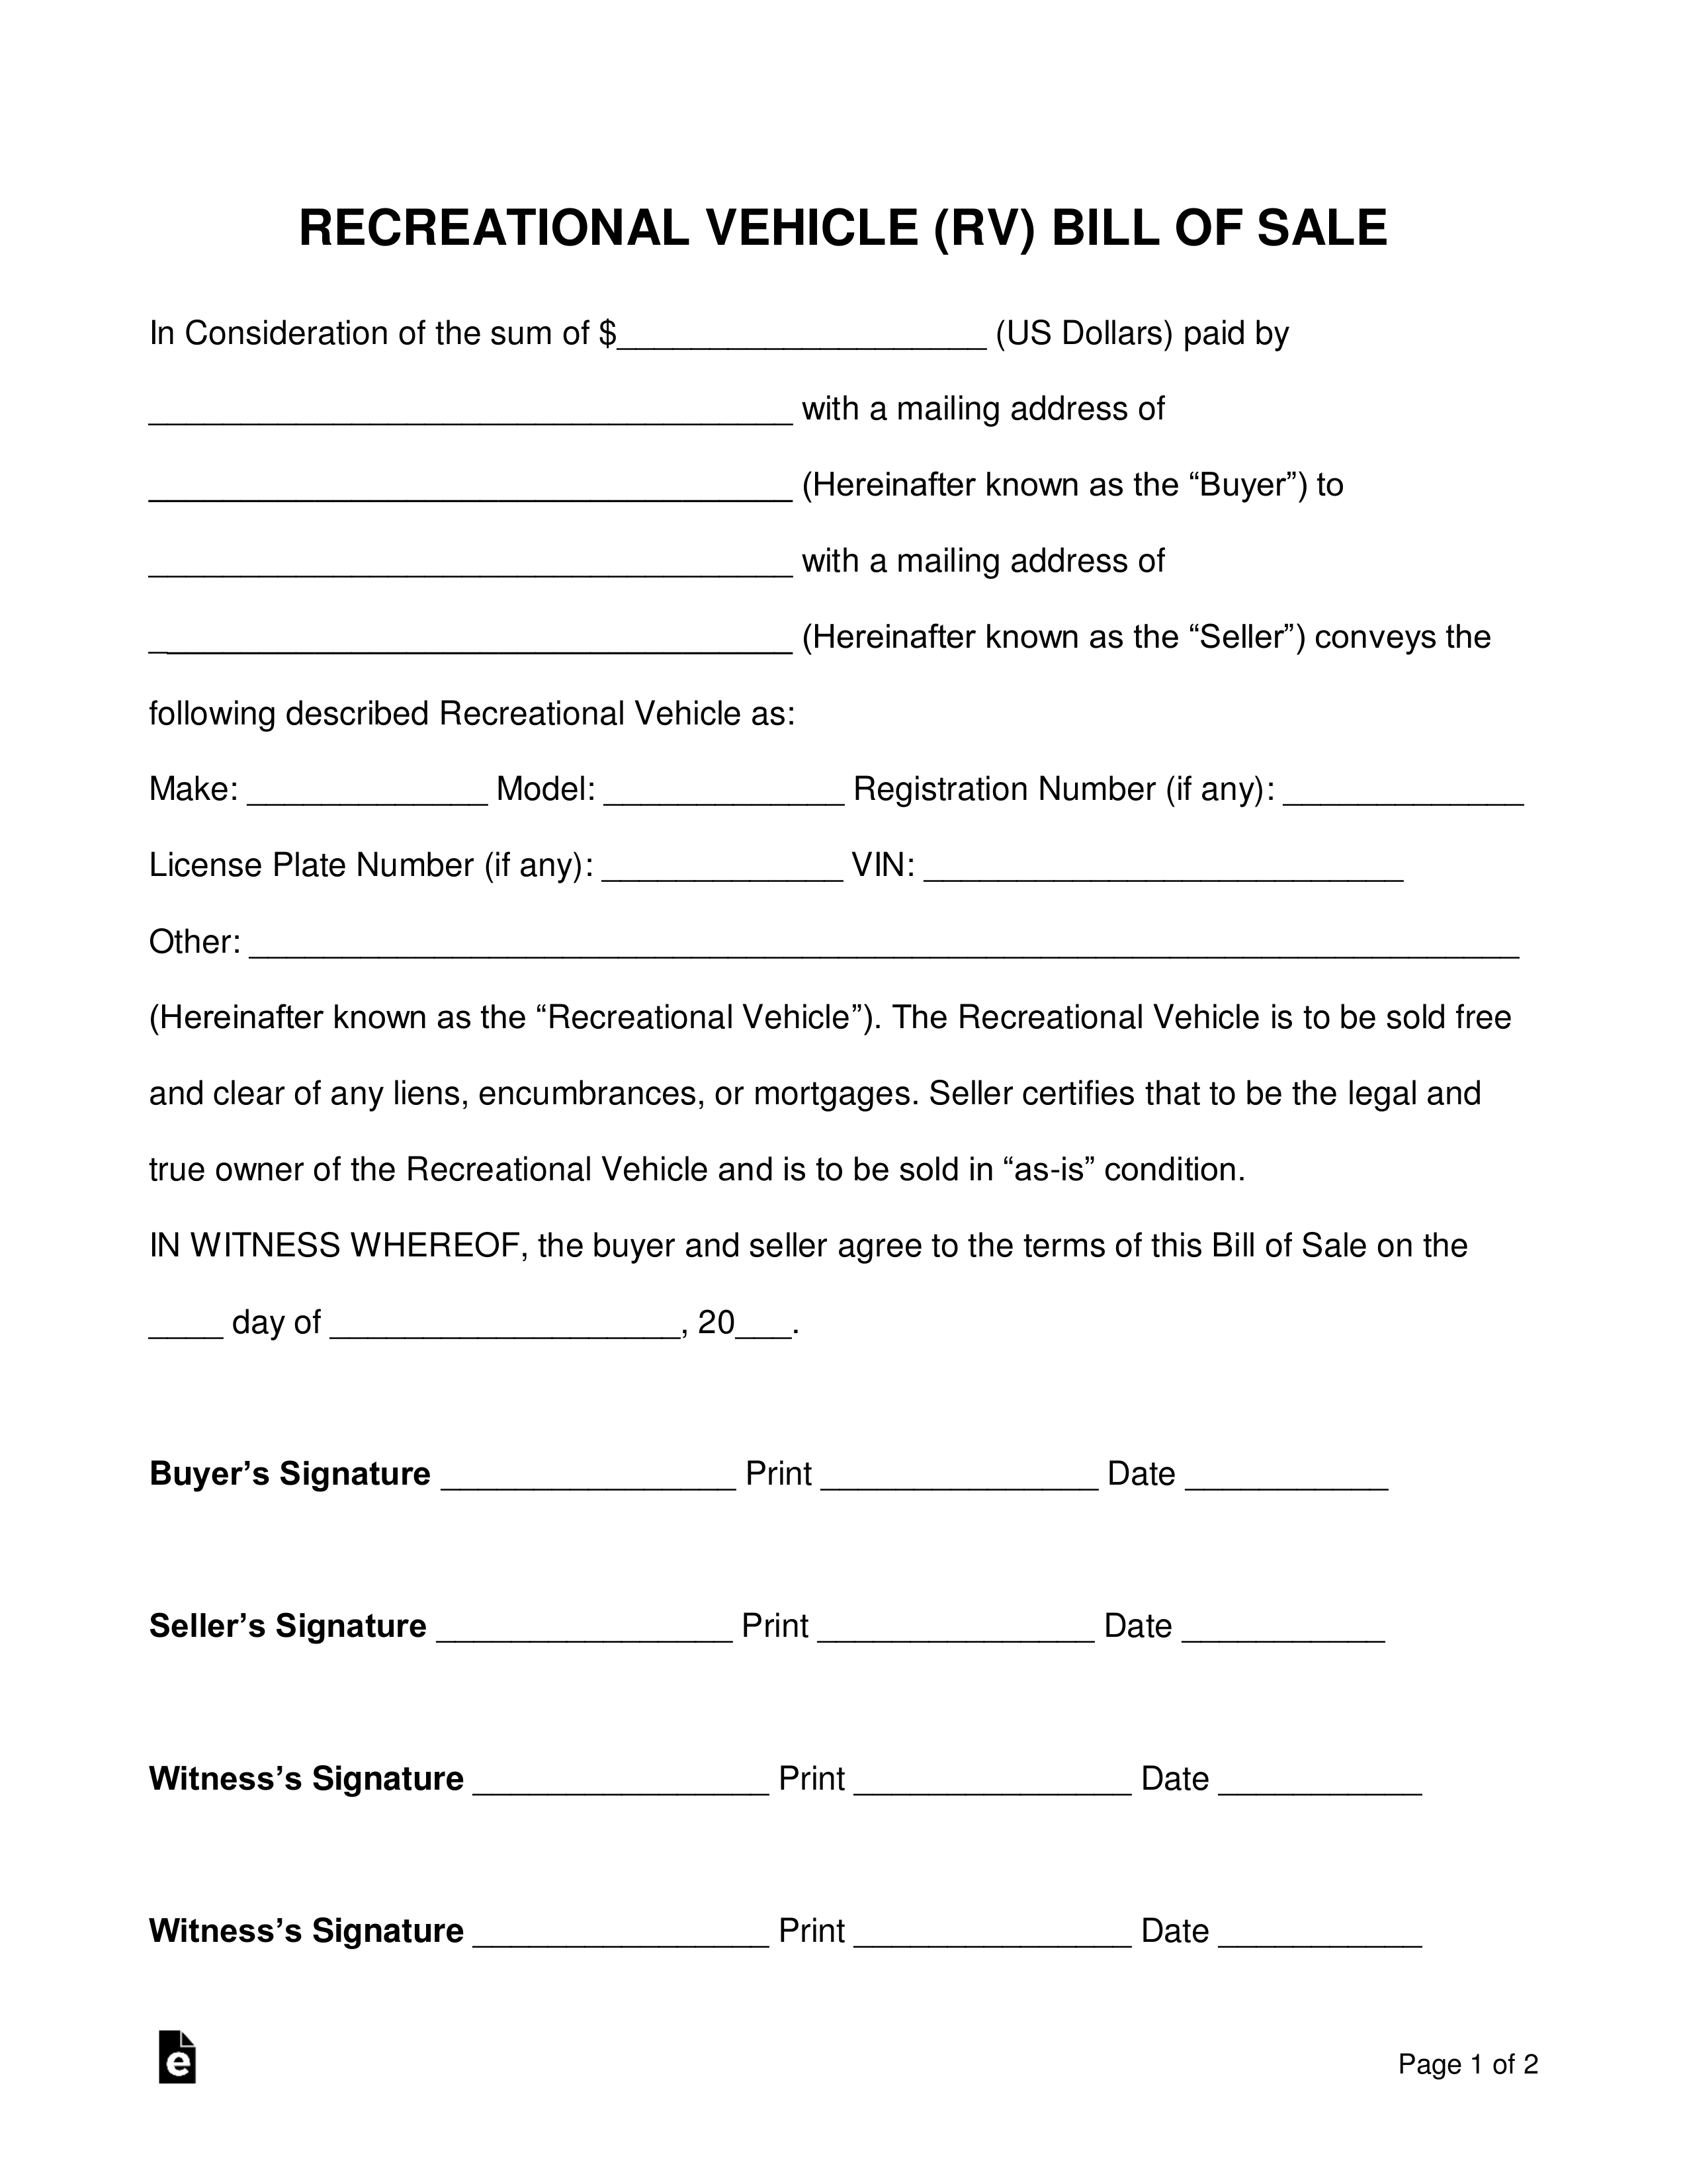 Free Recreational Vehicle (Rv) Bill Of Sale Form - Word